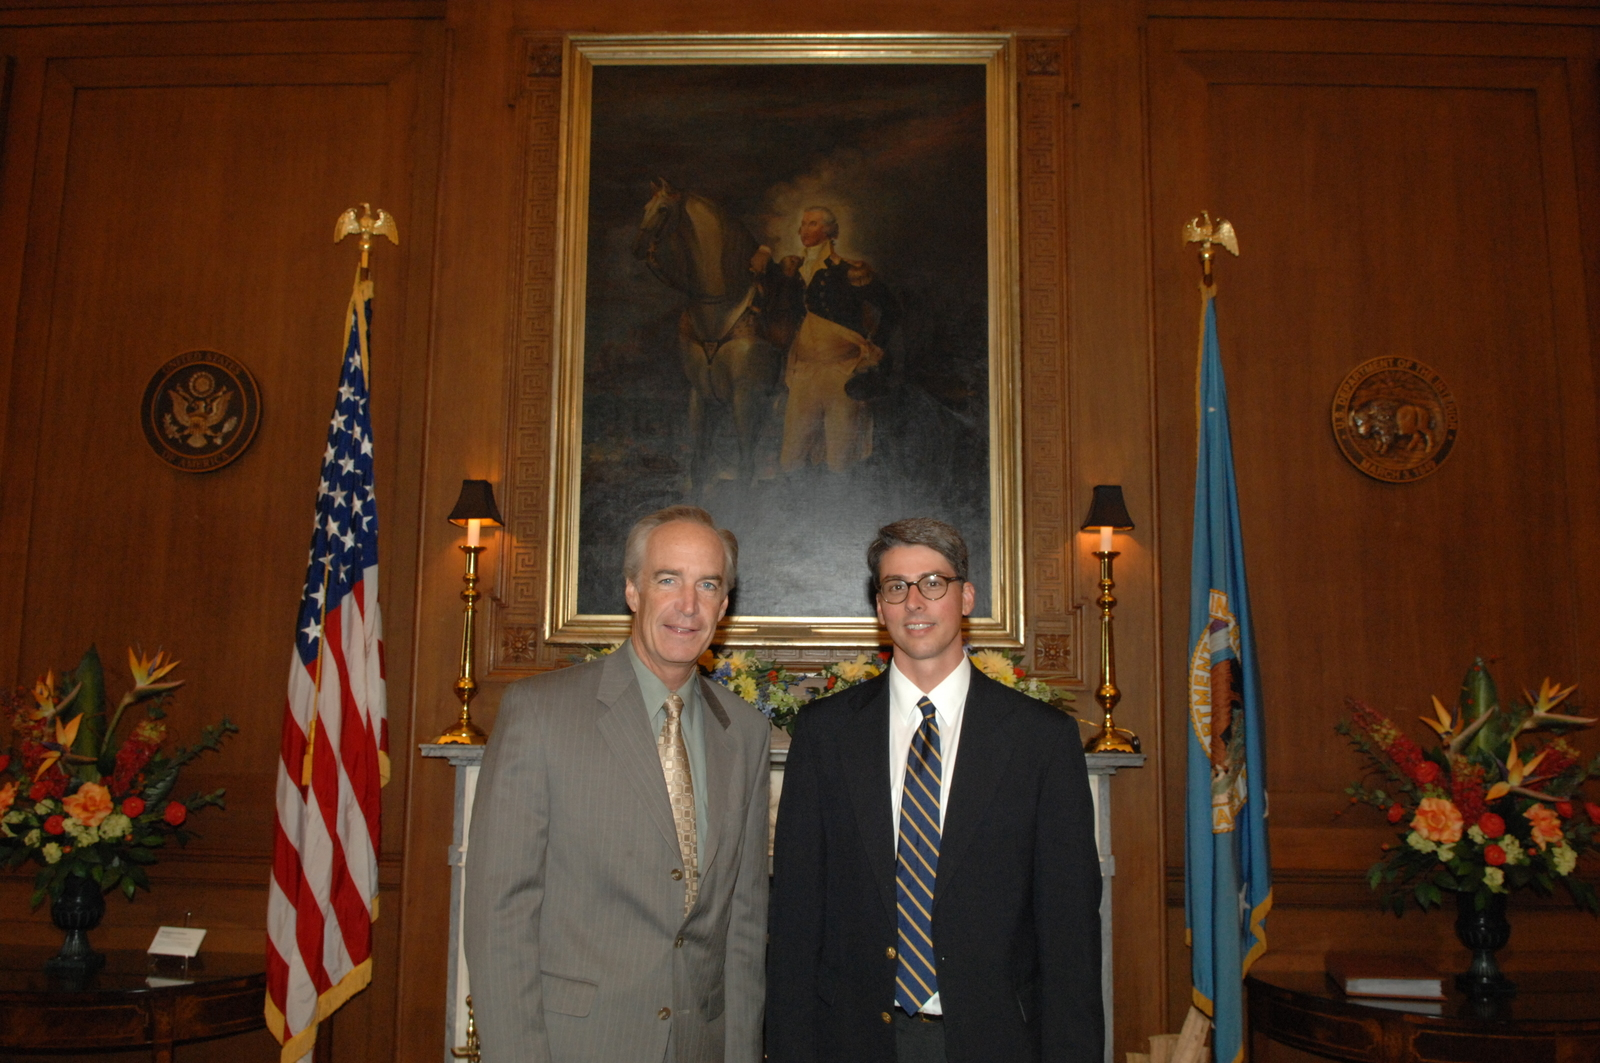 [Assignment: 48-DPA-07-31-08_SOI_K_JHarris] Secretary Dirk Kempthorne [at Main Interior] with James Harris, [Associate Solicitor for Mineral Resources,  Office of the Solicitor] [48-DPA-07-31-08_SOI_K_JHarris_IOD_1538.JPG]